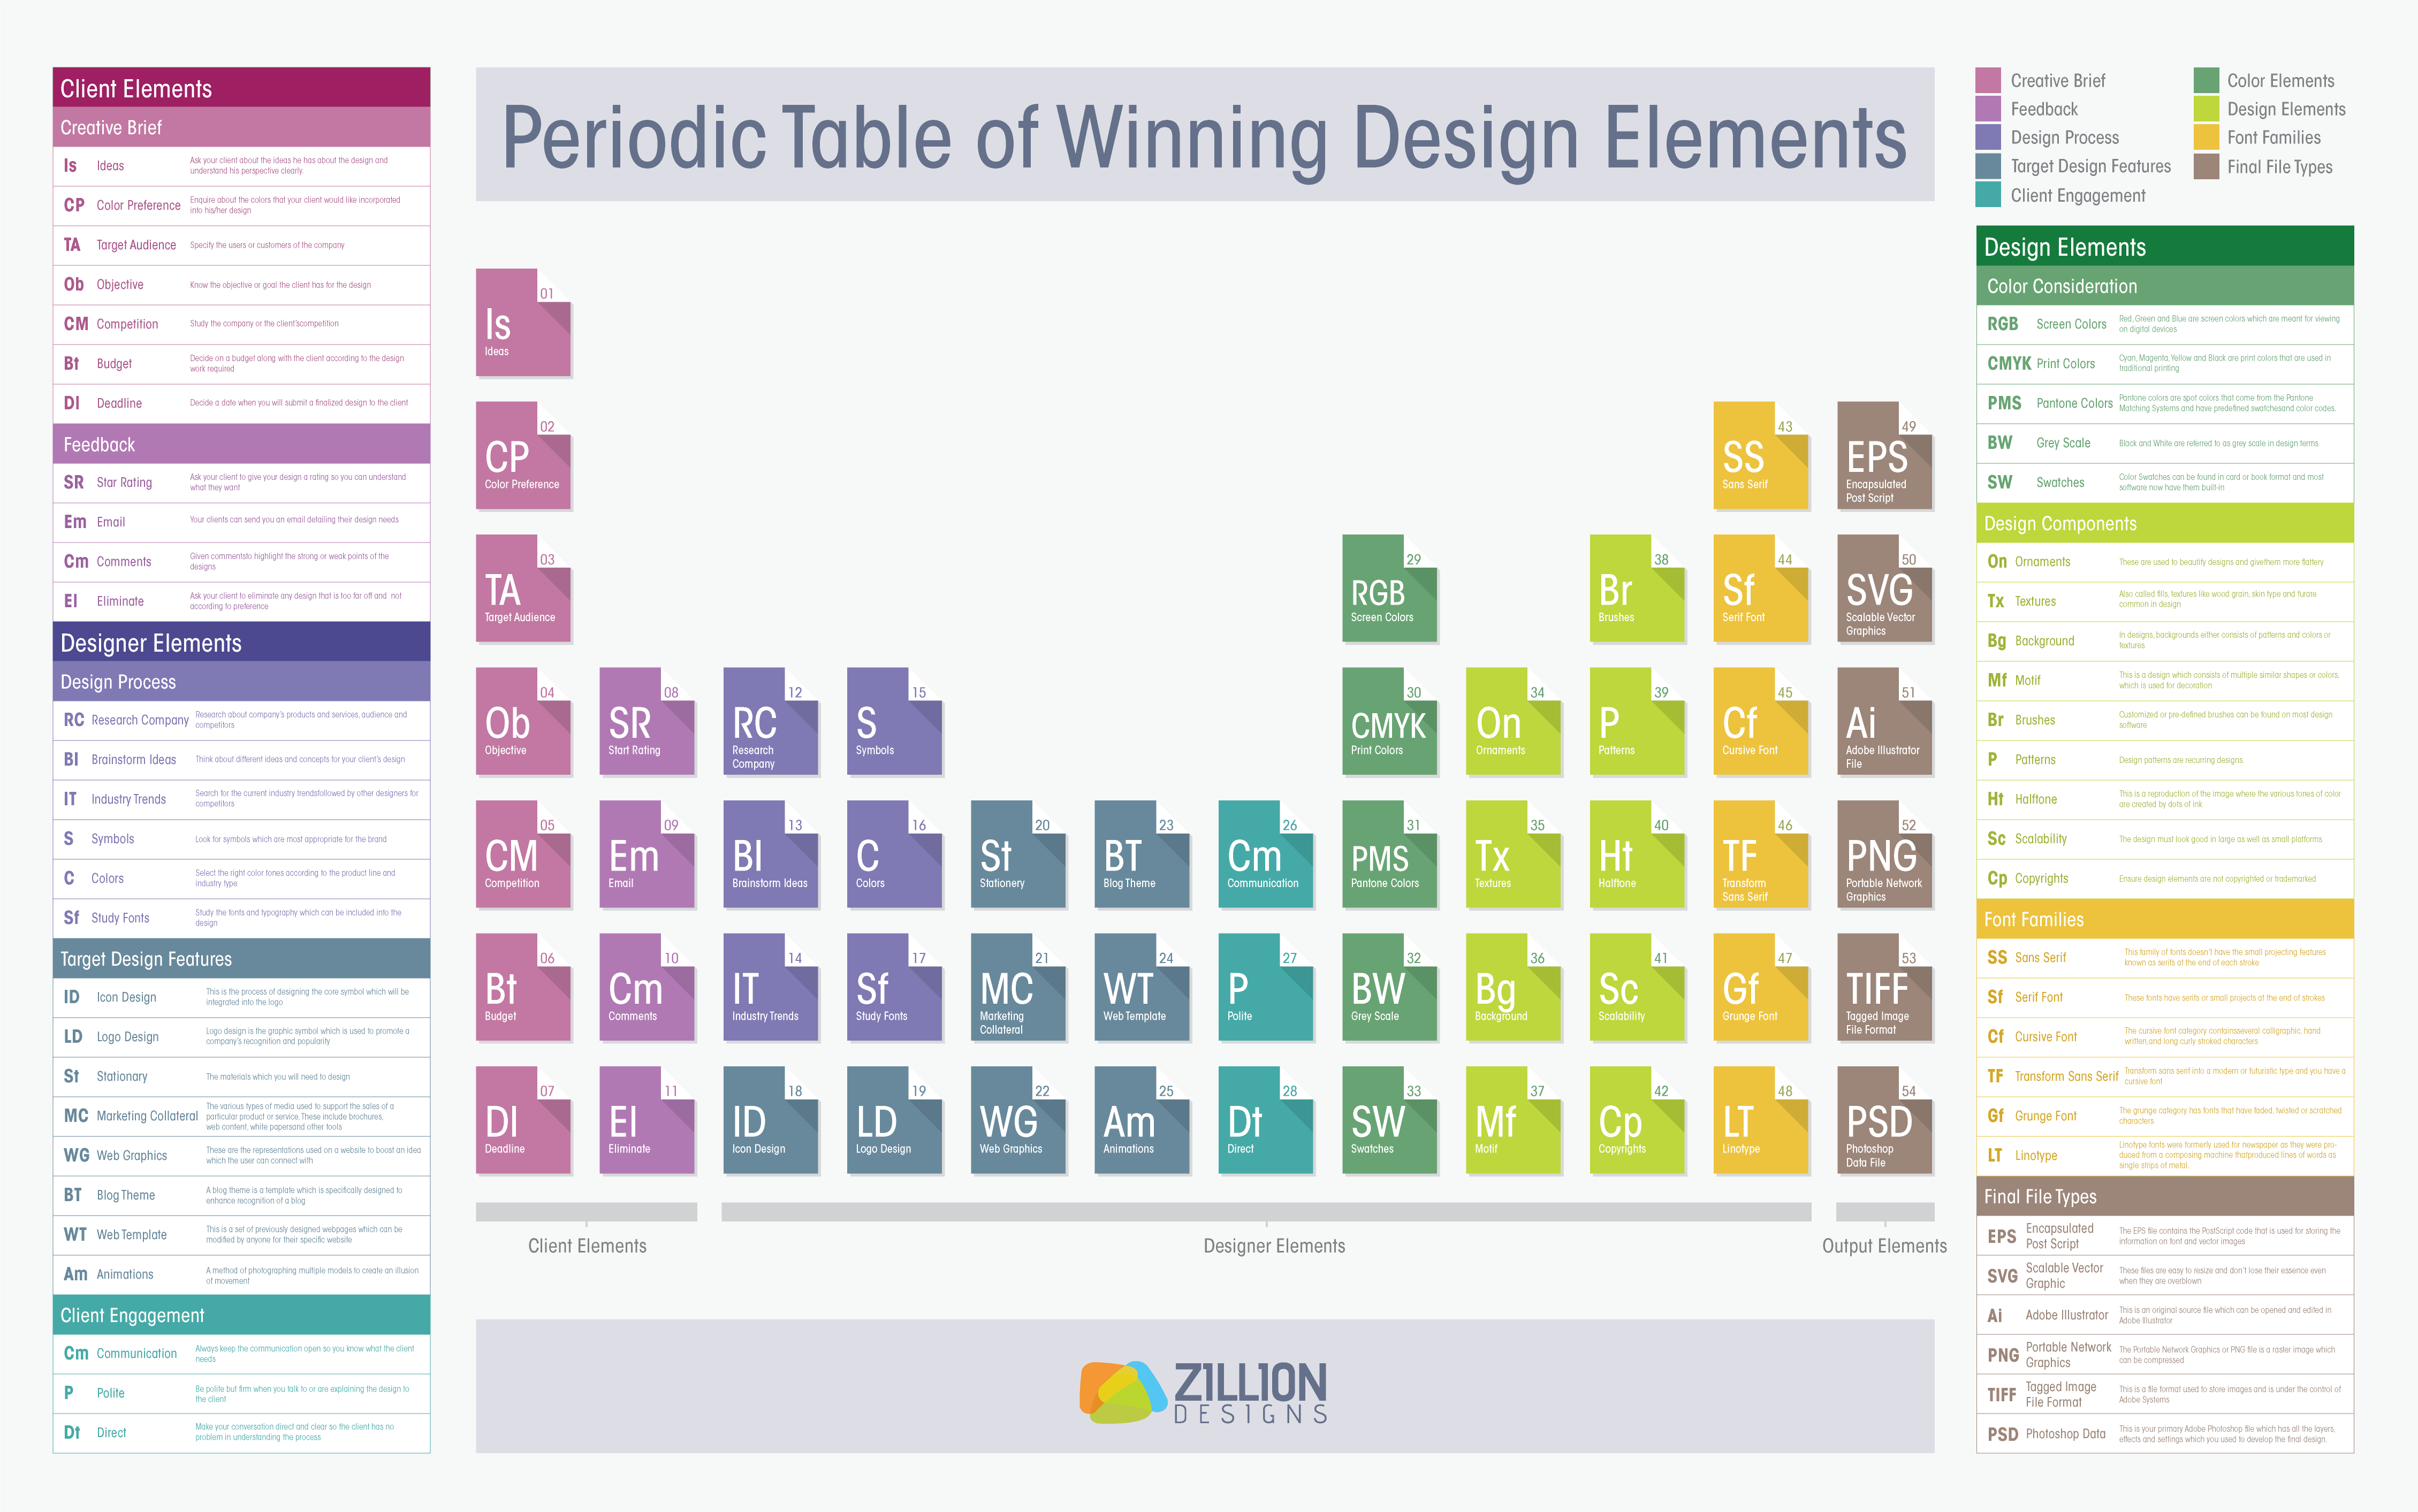 the periodic table of winning design elements visually